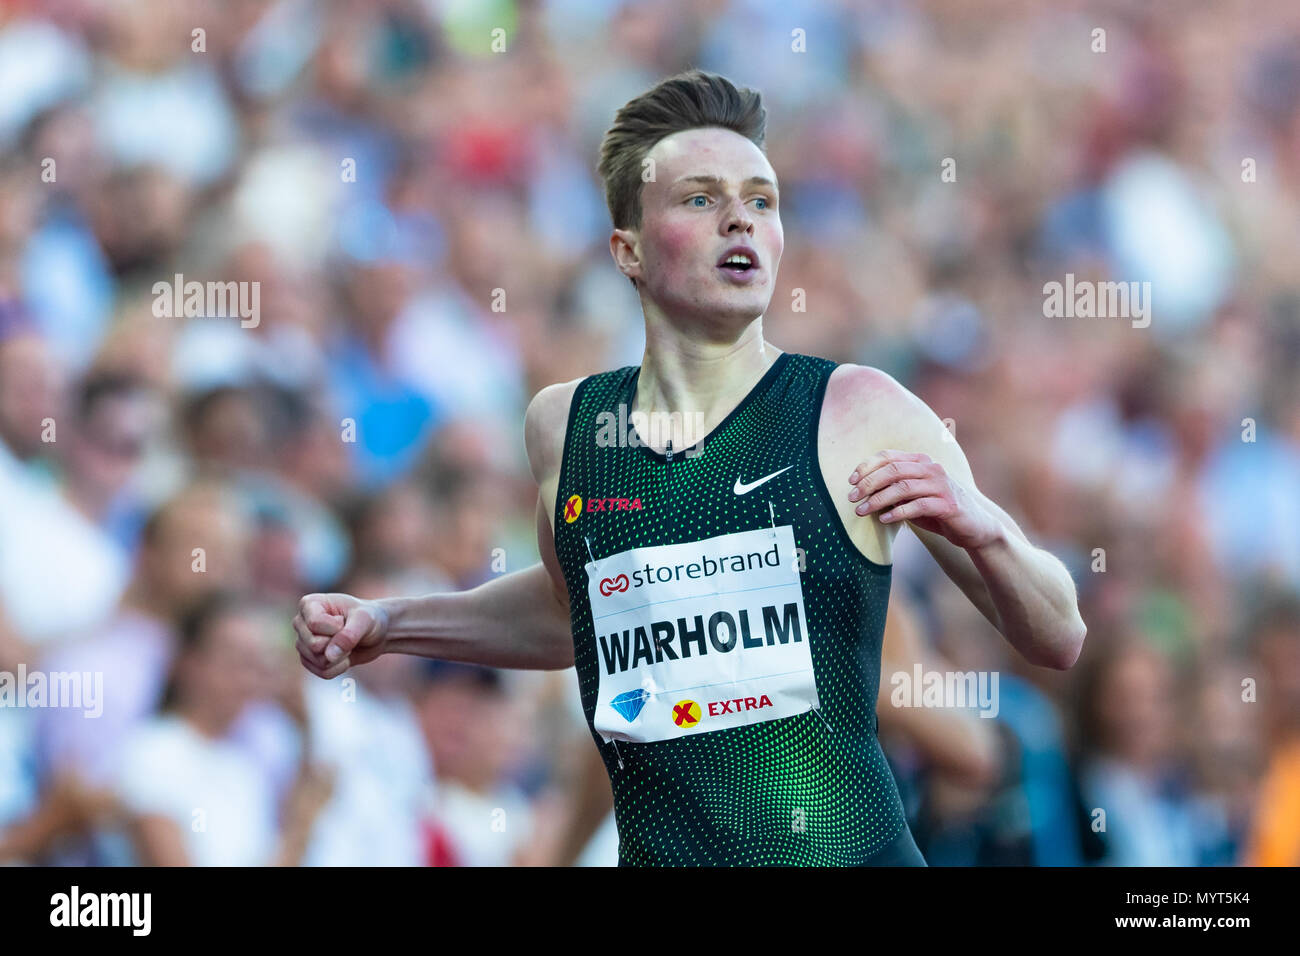 Oslo, Norway. 7th June 2018, Bislett stadium, Oslo, Norway; Bislett Games, Diamond League Athletics meeting; Karsten Warholm of Norway reacts during the IAAF Diamond League held at the Bislett Stadium Credit: Action Plus Sports Images/Alamy Live News - Stock Image